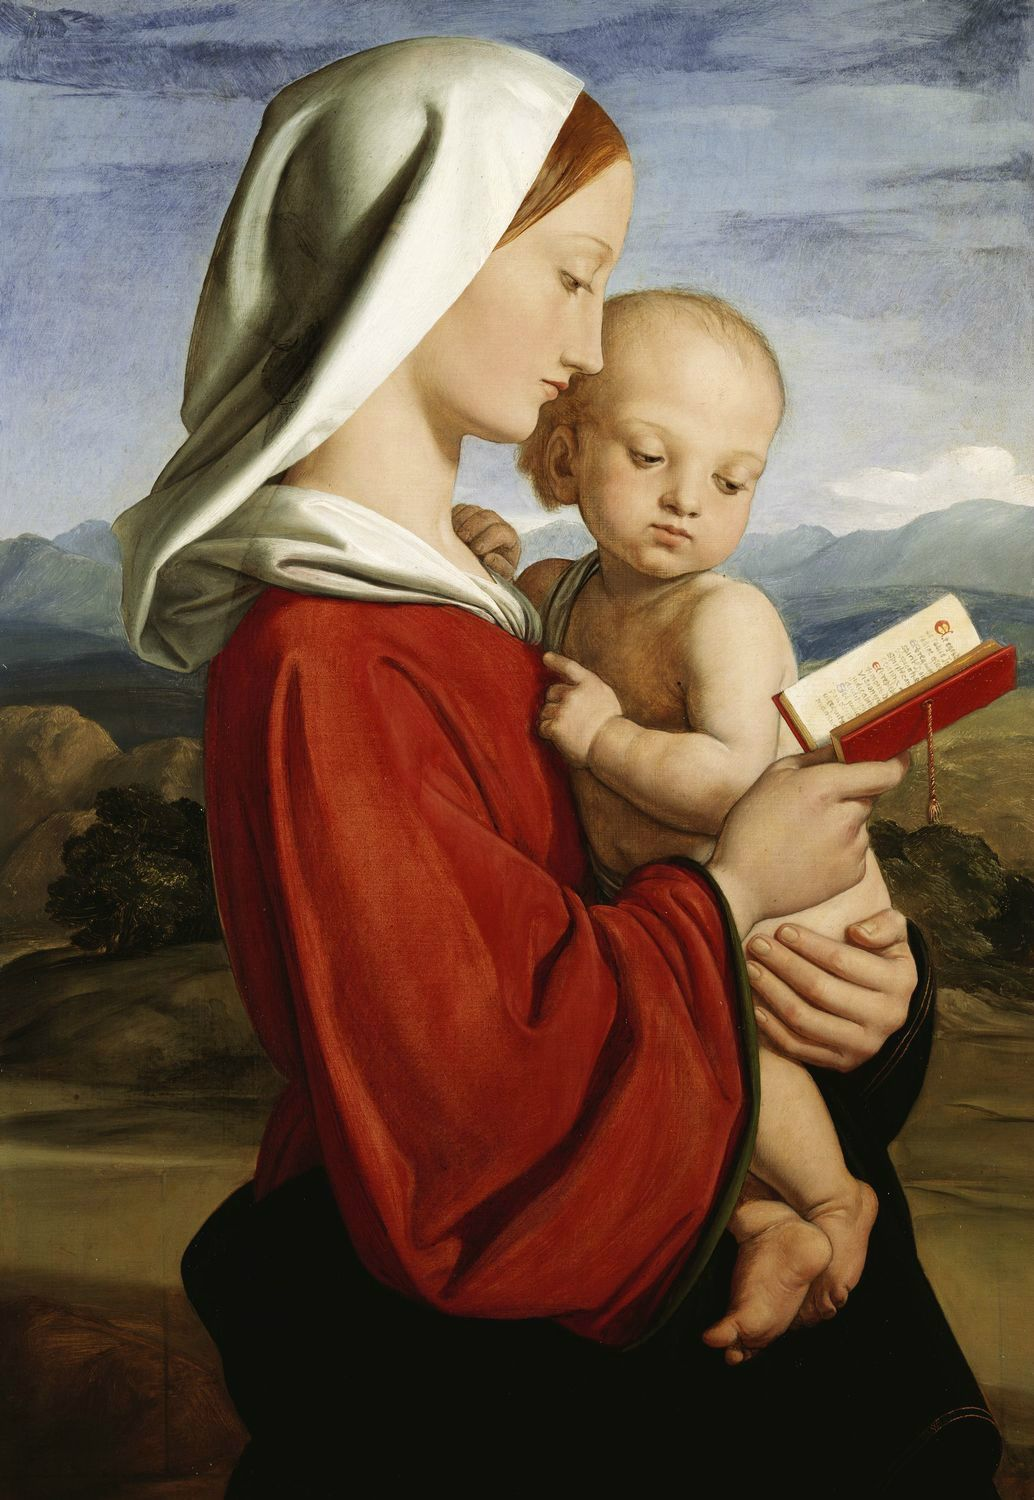 William Dyce (1806-64), The Madonna and Child. 1845.